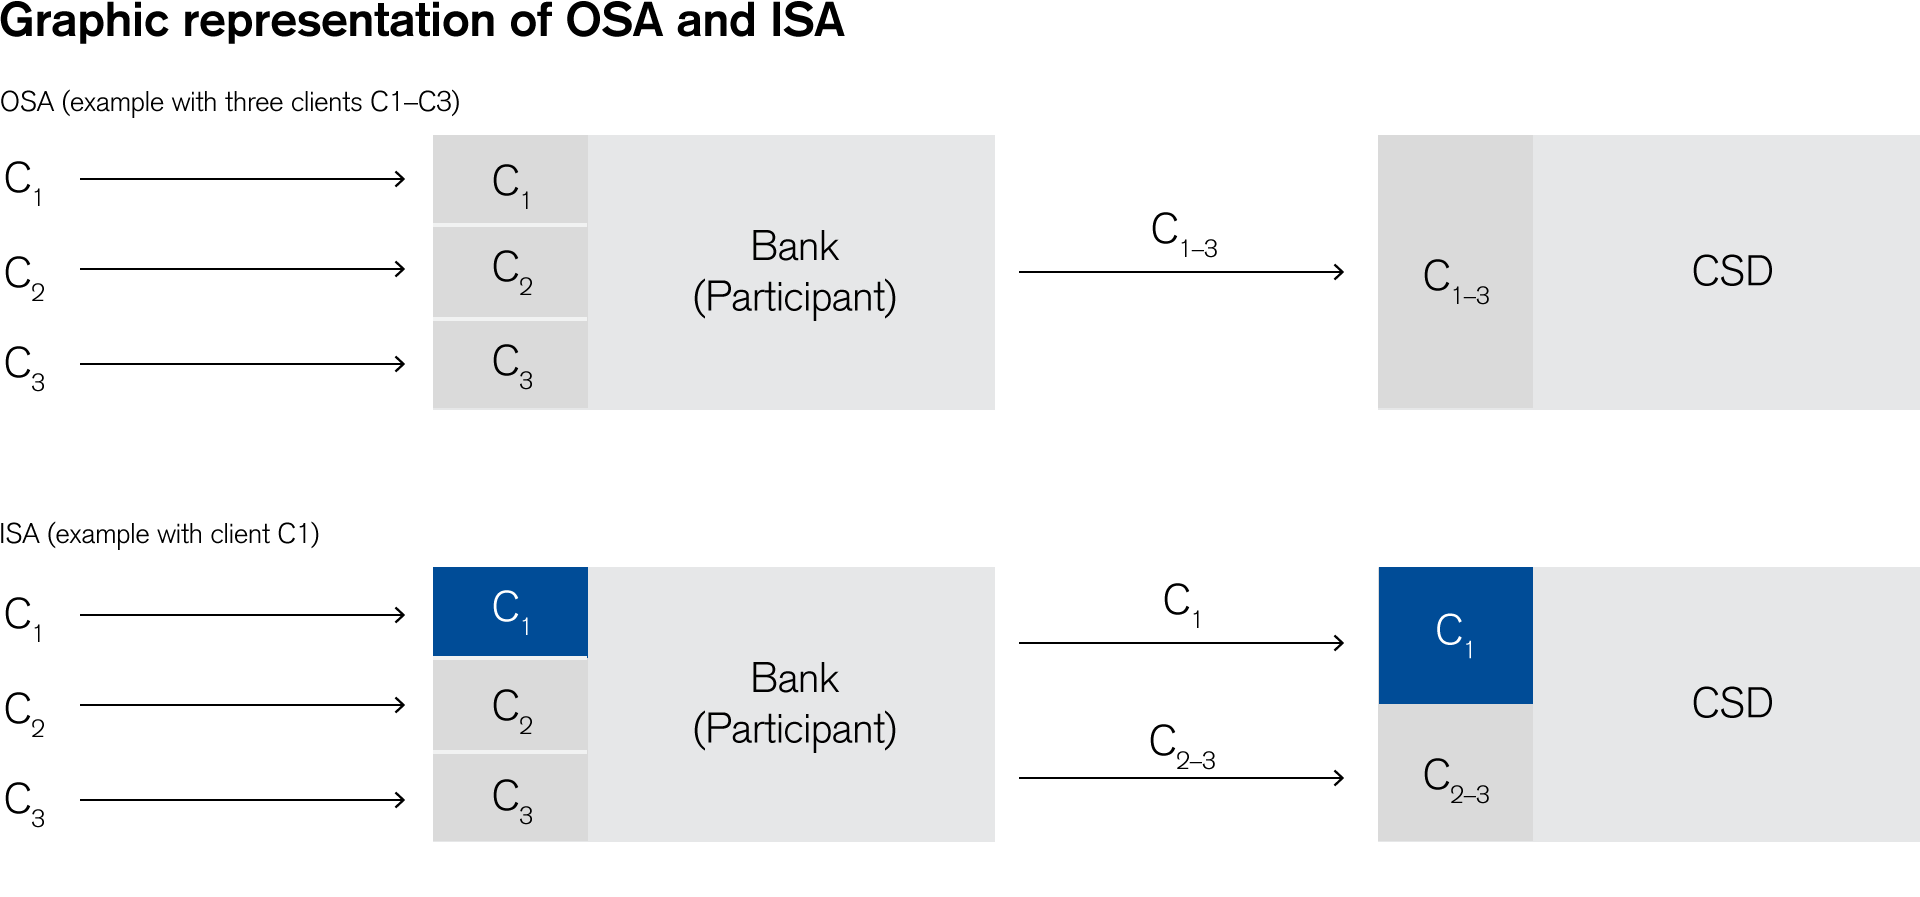 Graphic representation of OSA and ISA